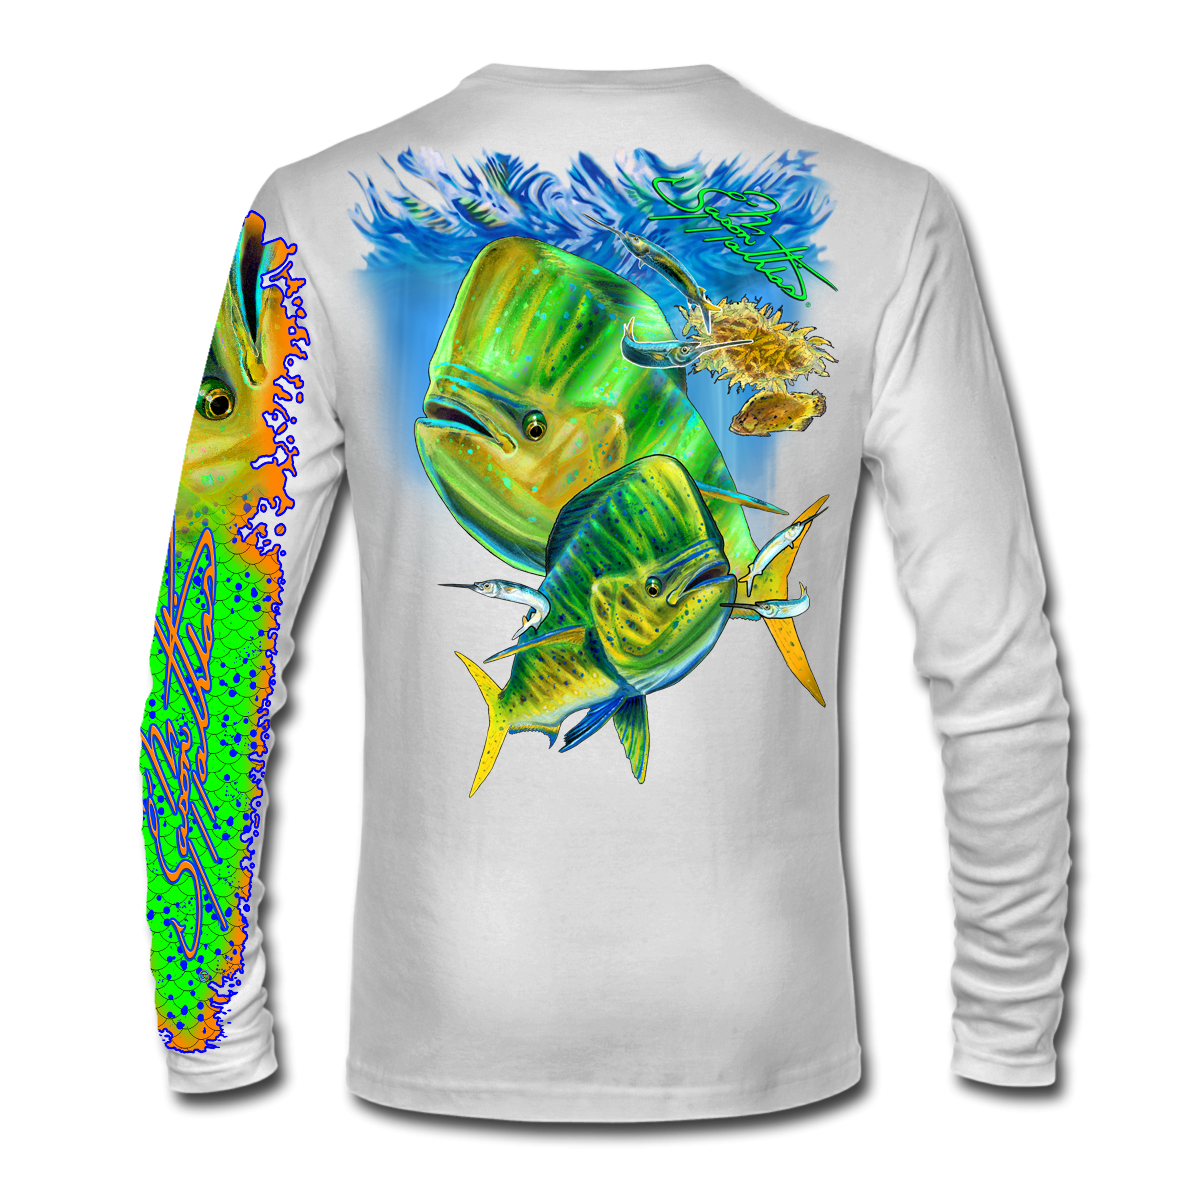 mahi-shirt-white-back-jason-mathias.png